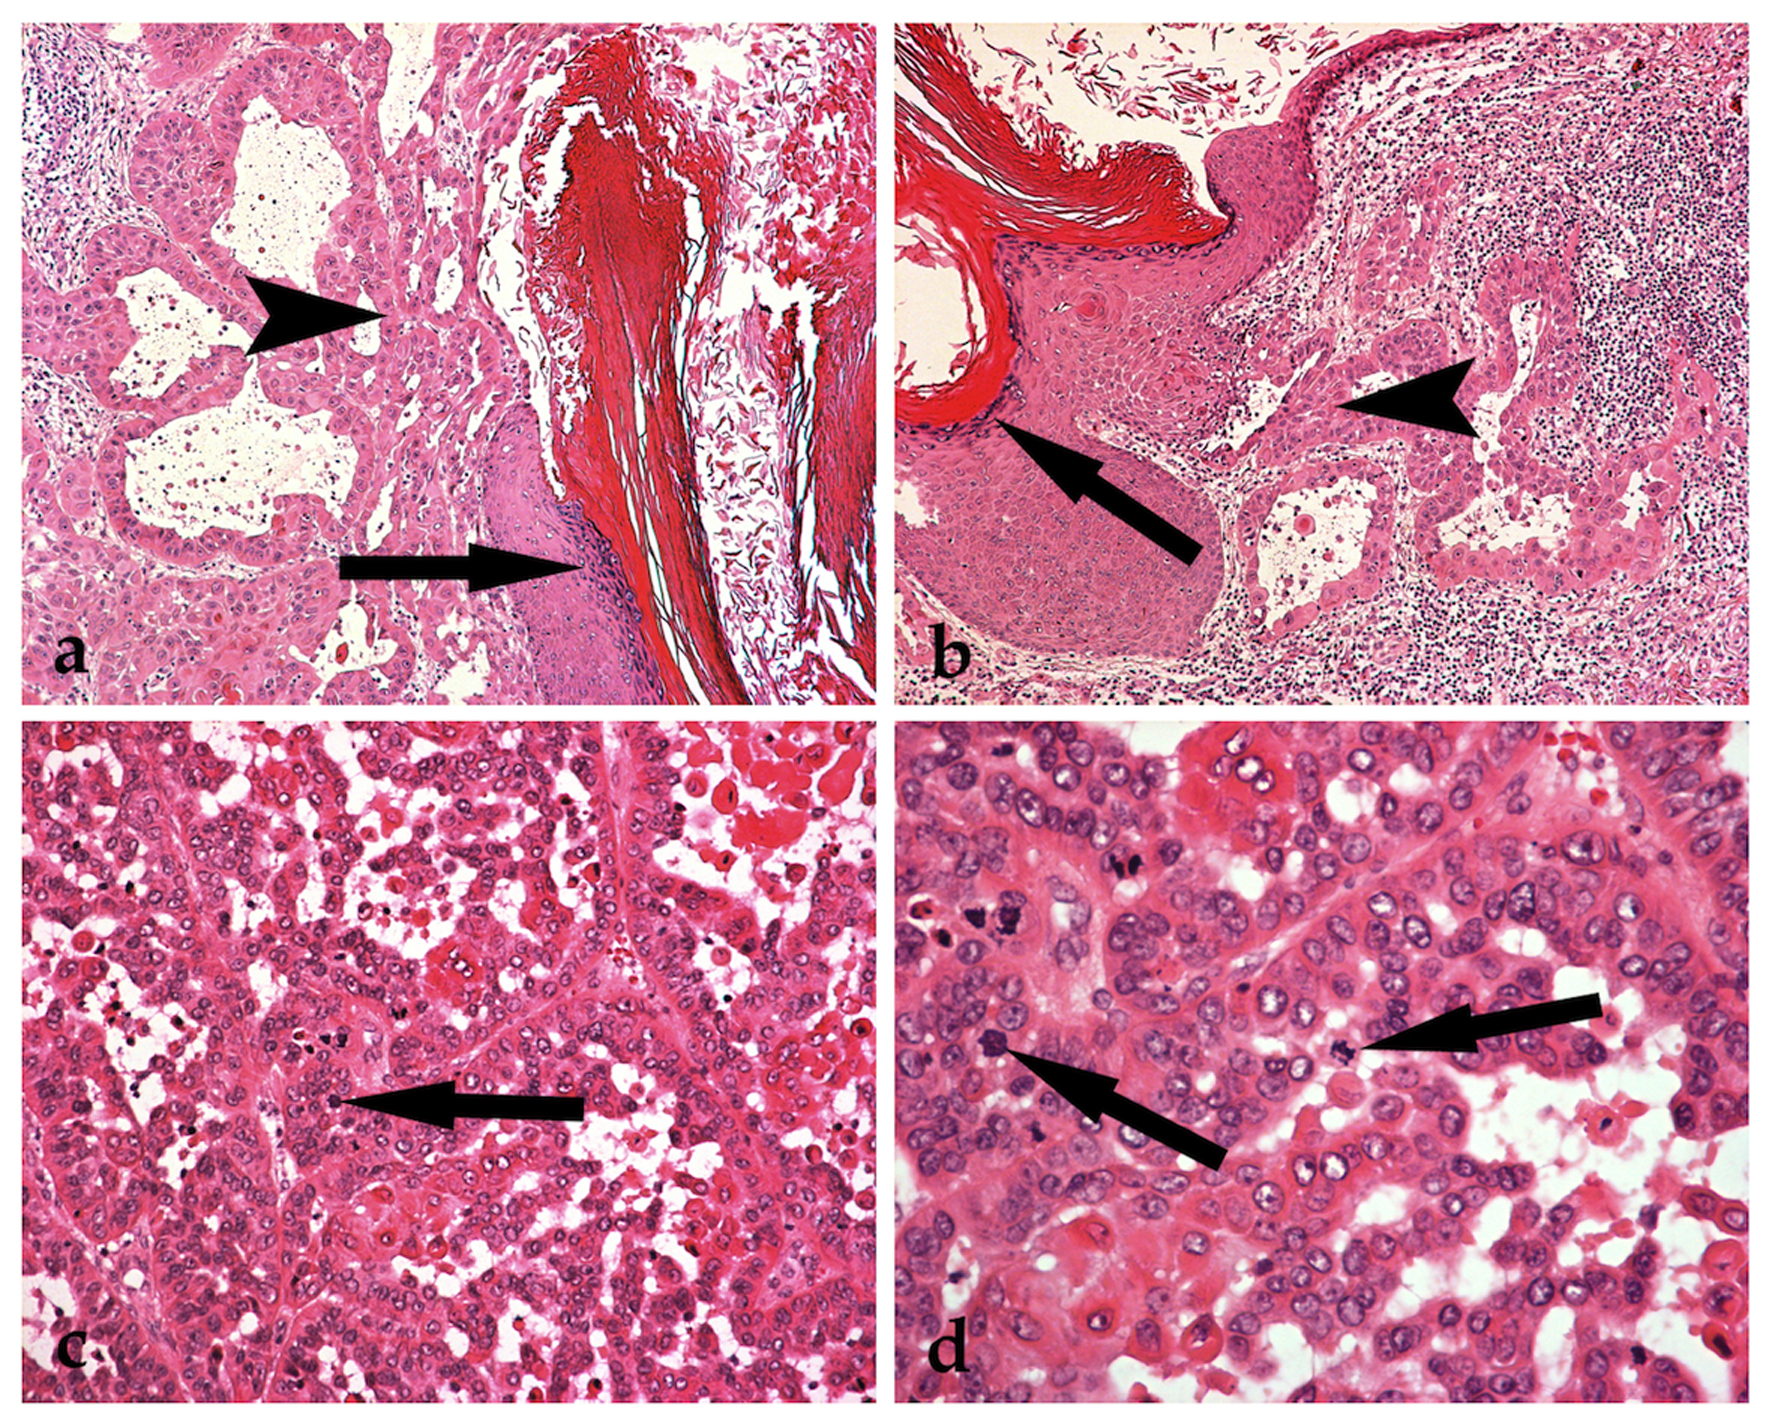 Malignant Transformation in a Typical Epidermal Cutaneous